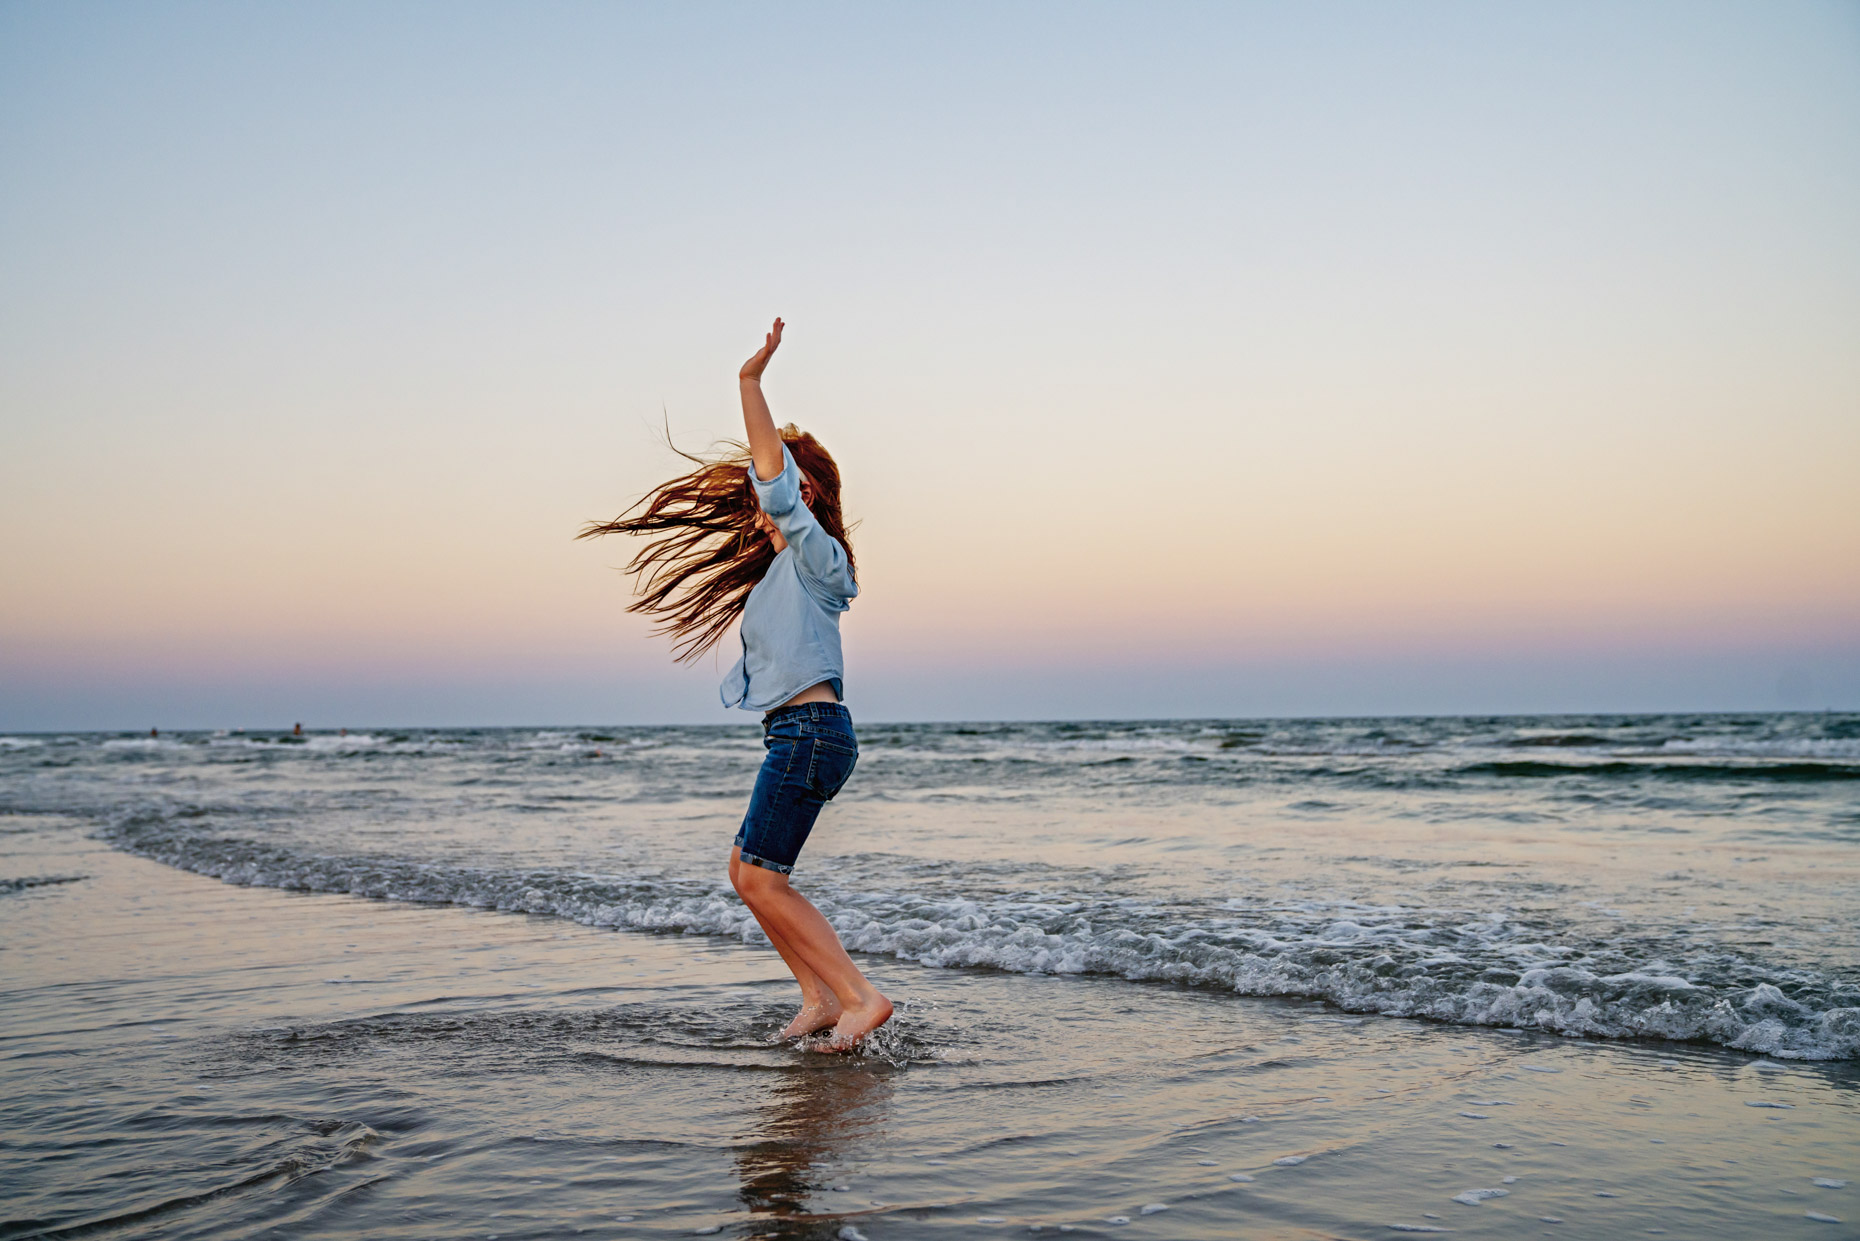 Girl with long red hair jumping in the waves on beach at sunset